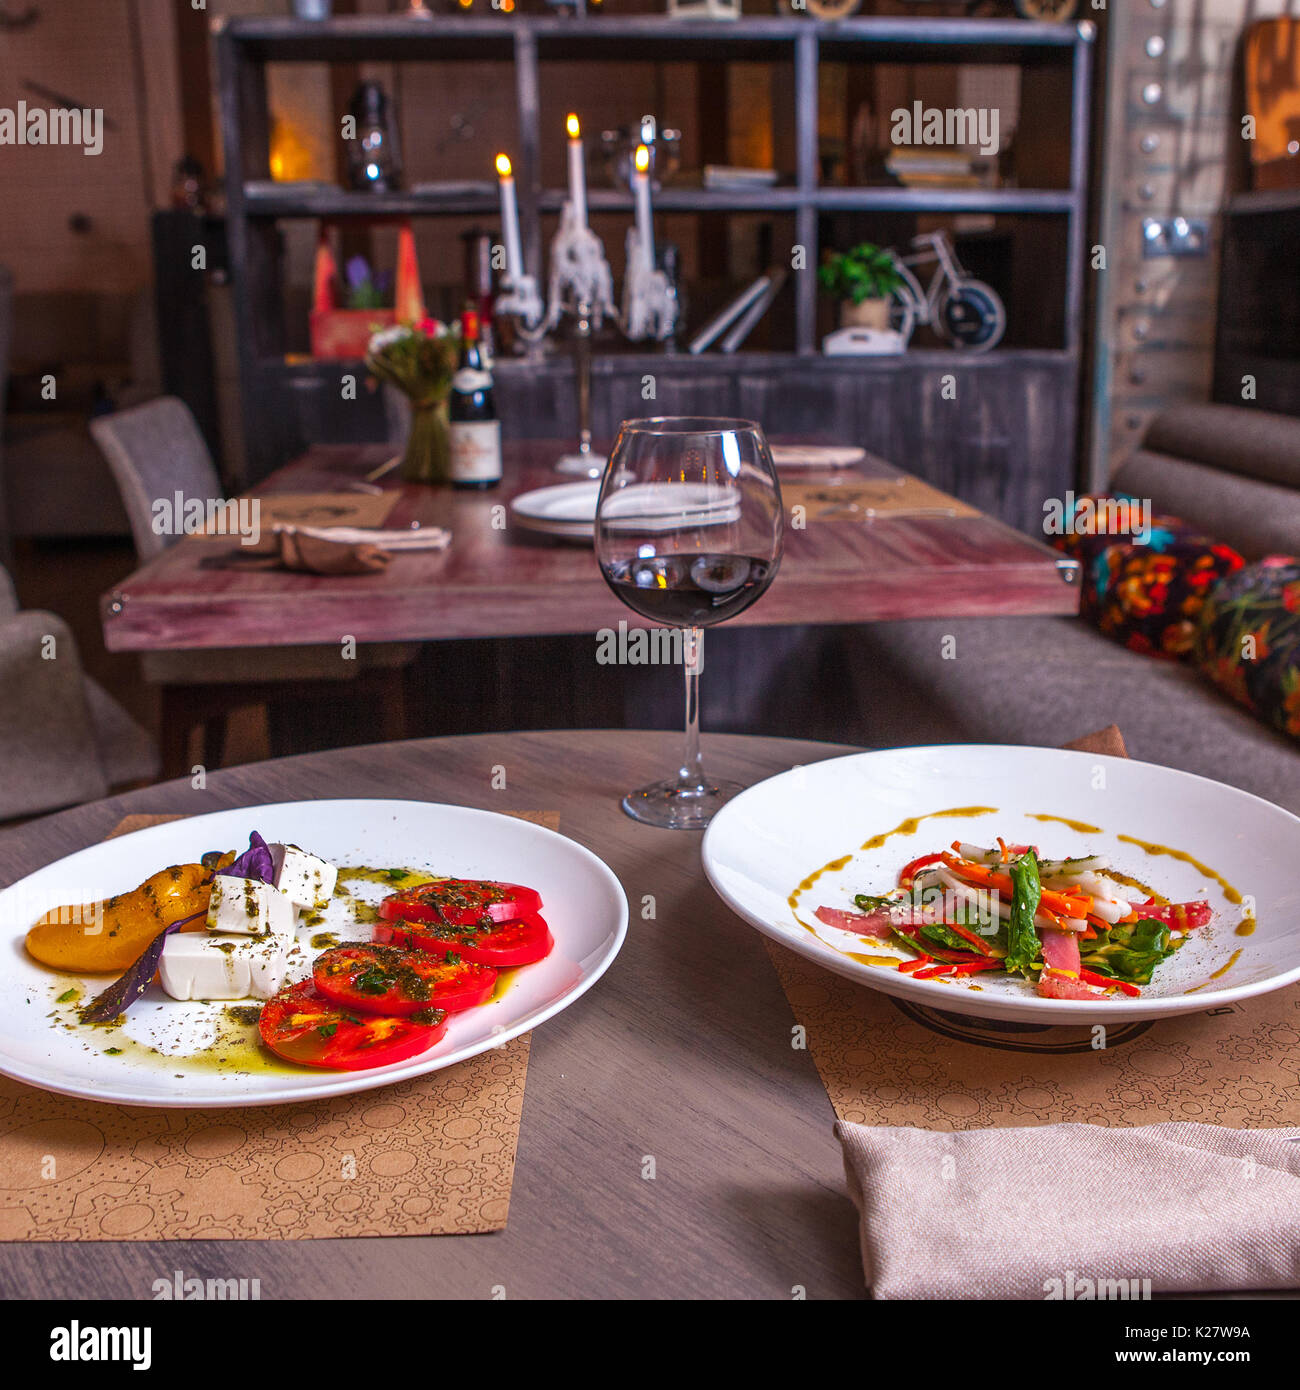 two plates with vegetarian salads on the table in the restaurant - Stock Image